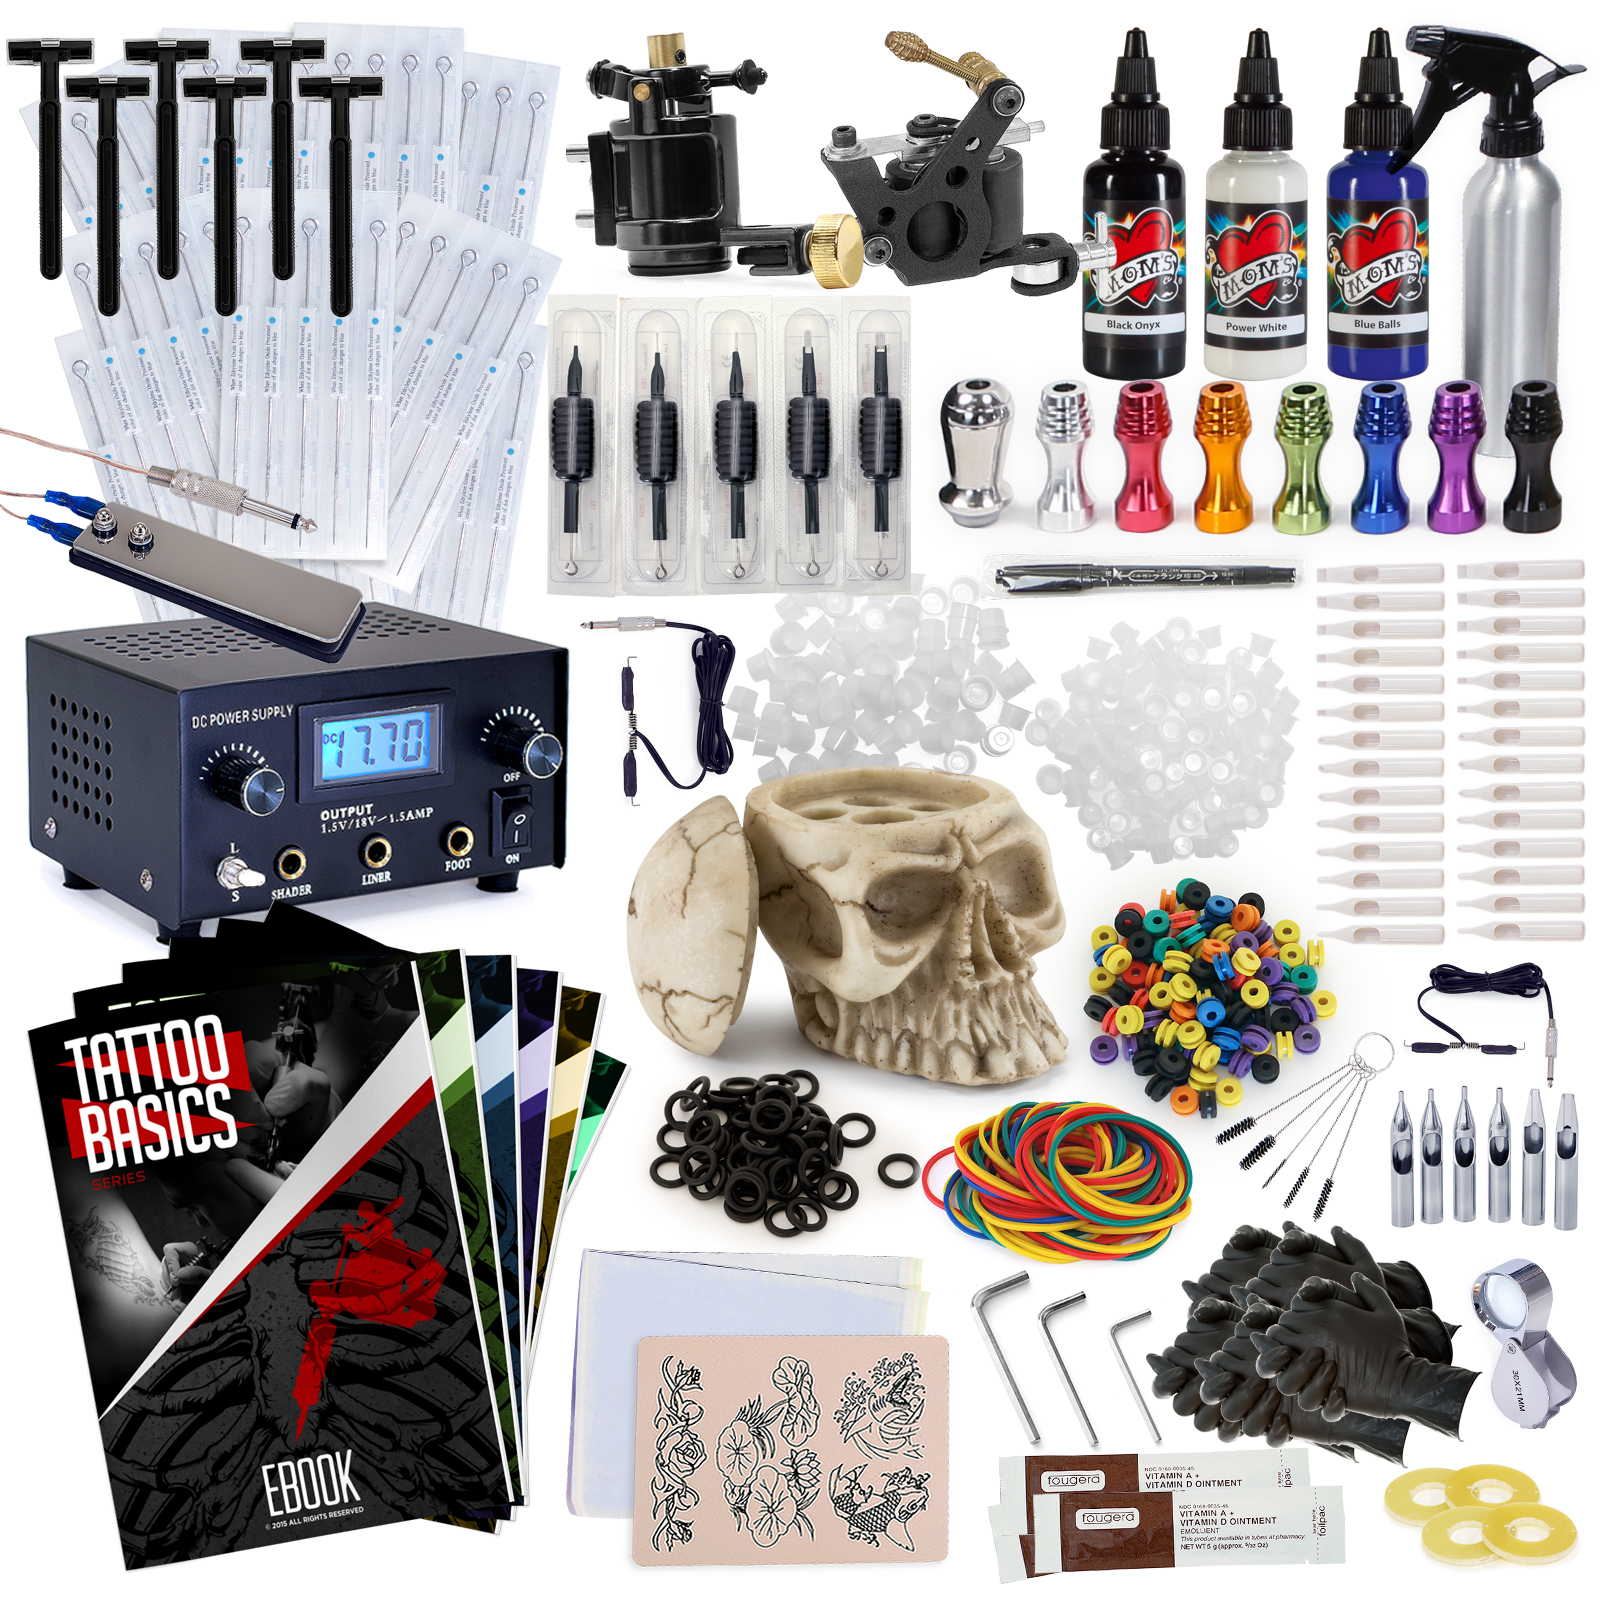 Complete professional tattoo gun kit machine equipment set for Tattoo supplies ebay